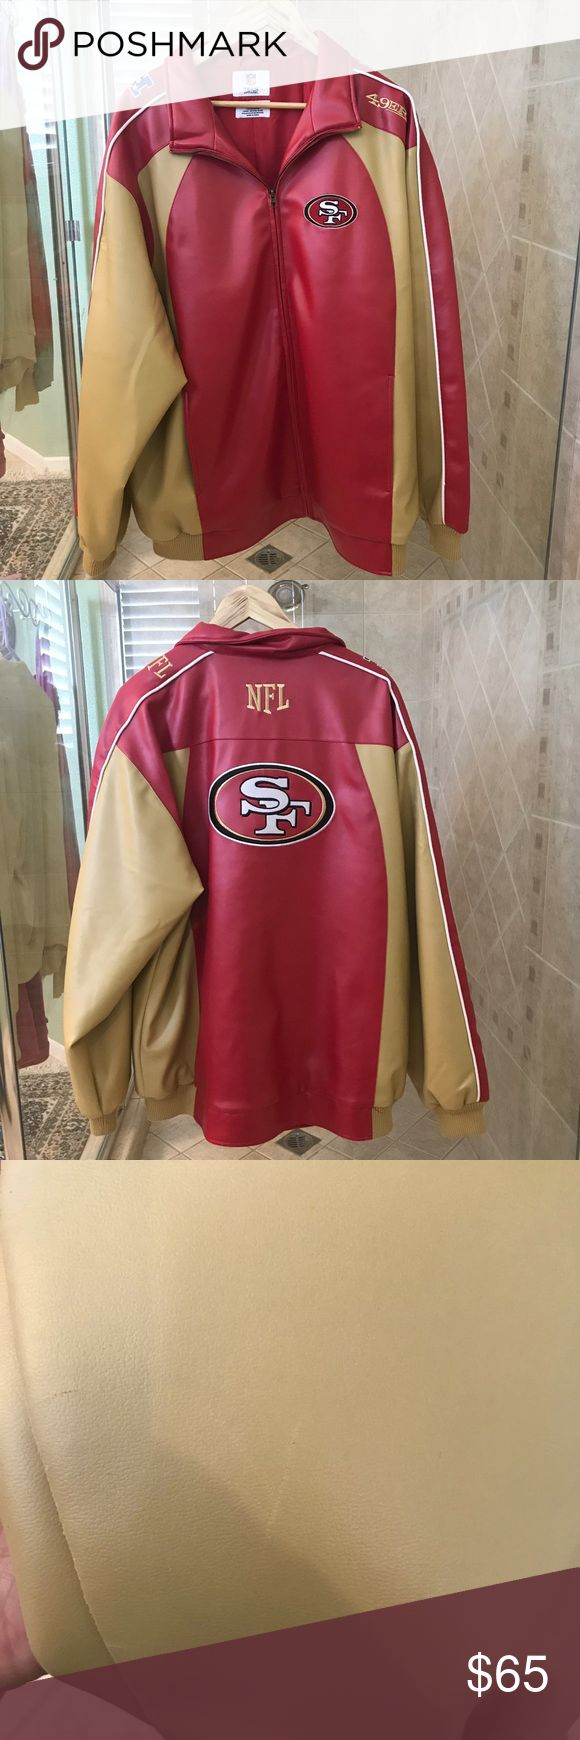 Vintage Faux Leather 49ers Jacket Sz XL This heavy vintage jacket will keep you warm. No rips just a few light scratches and a minor stain. All flaws are shown in pictures . Its a great jacket with alot of life left NFL Apparel Jackets & Coats